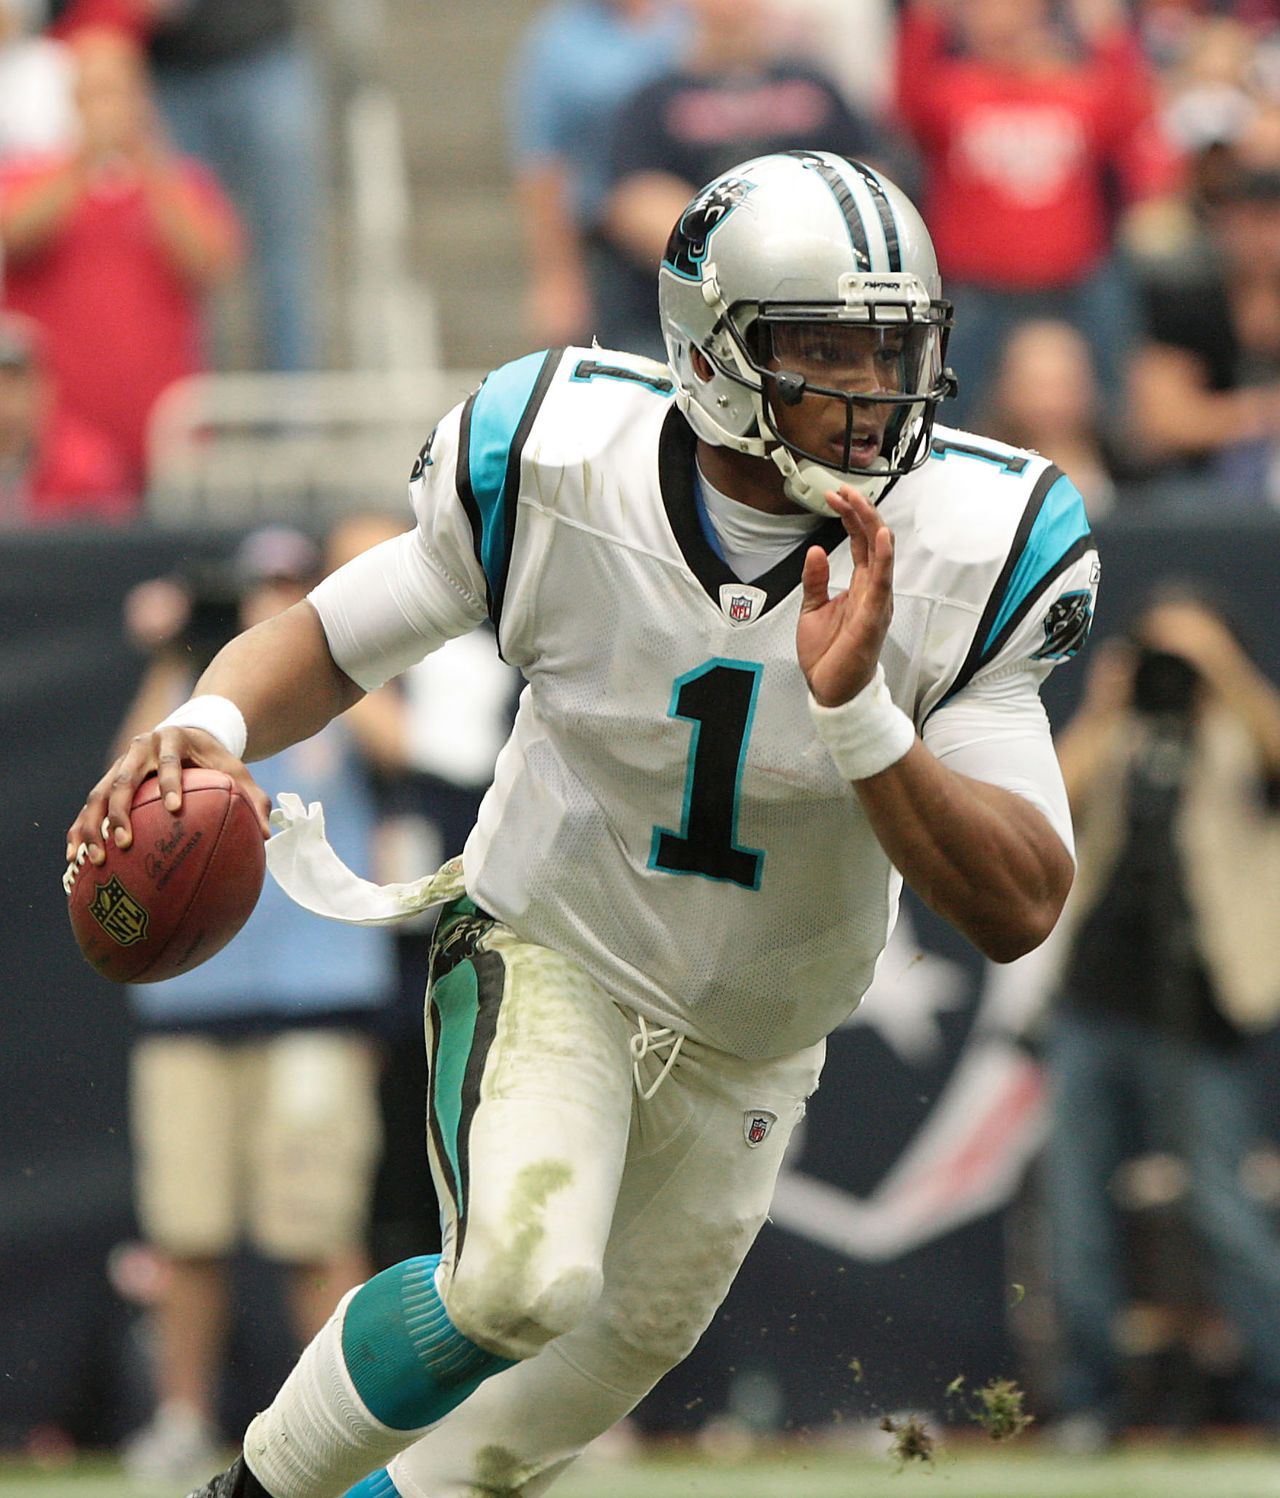 Newton had arguably the best rookie season of any player in NFL history, maybe even sports history. Newton set single-season rookie records for passing yards (4,051), most total touchdowns (35) and rushing touchdowns by a quarterback (14), along with other numerous other marks -- too many to mention.